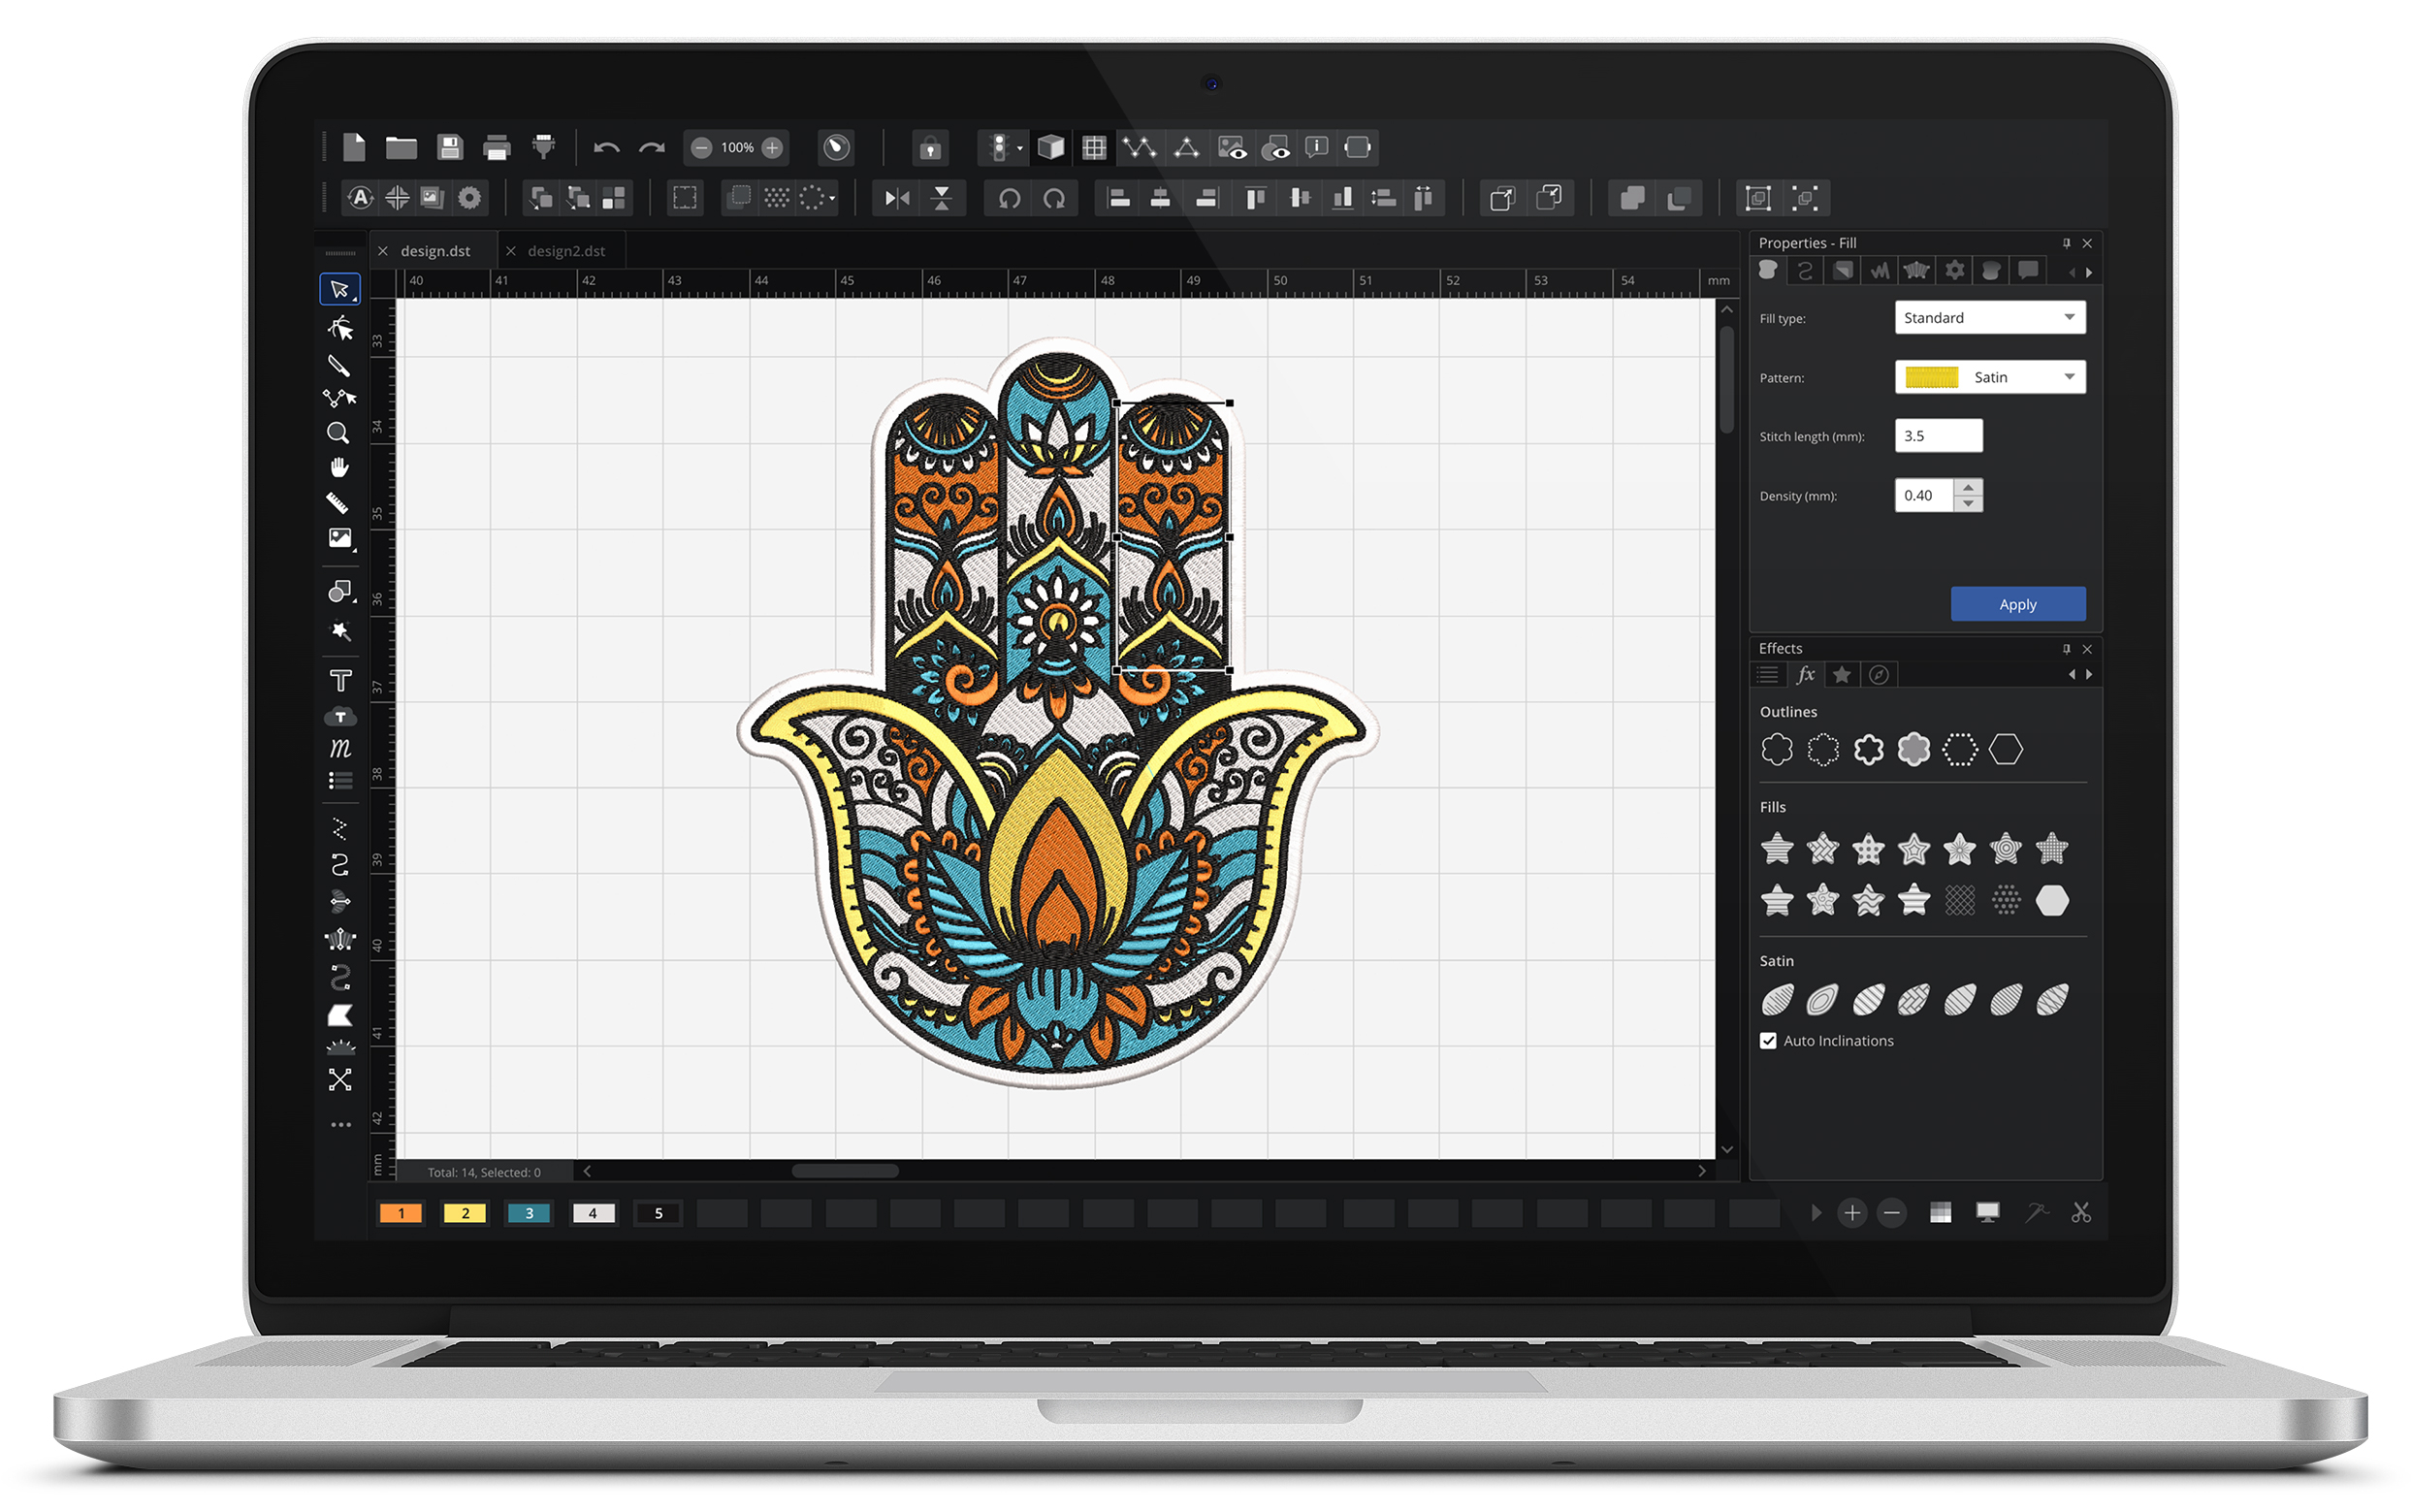 Embroidery Pattern Software Chroma